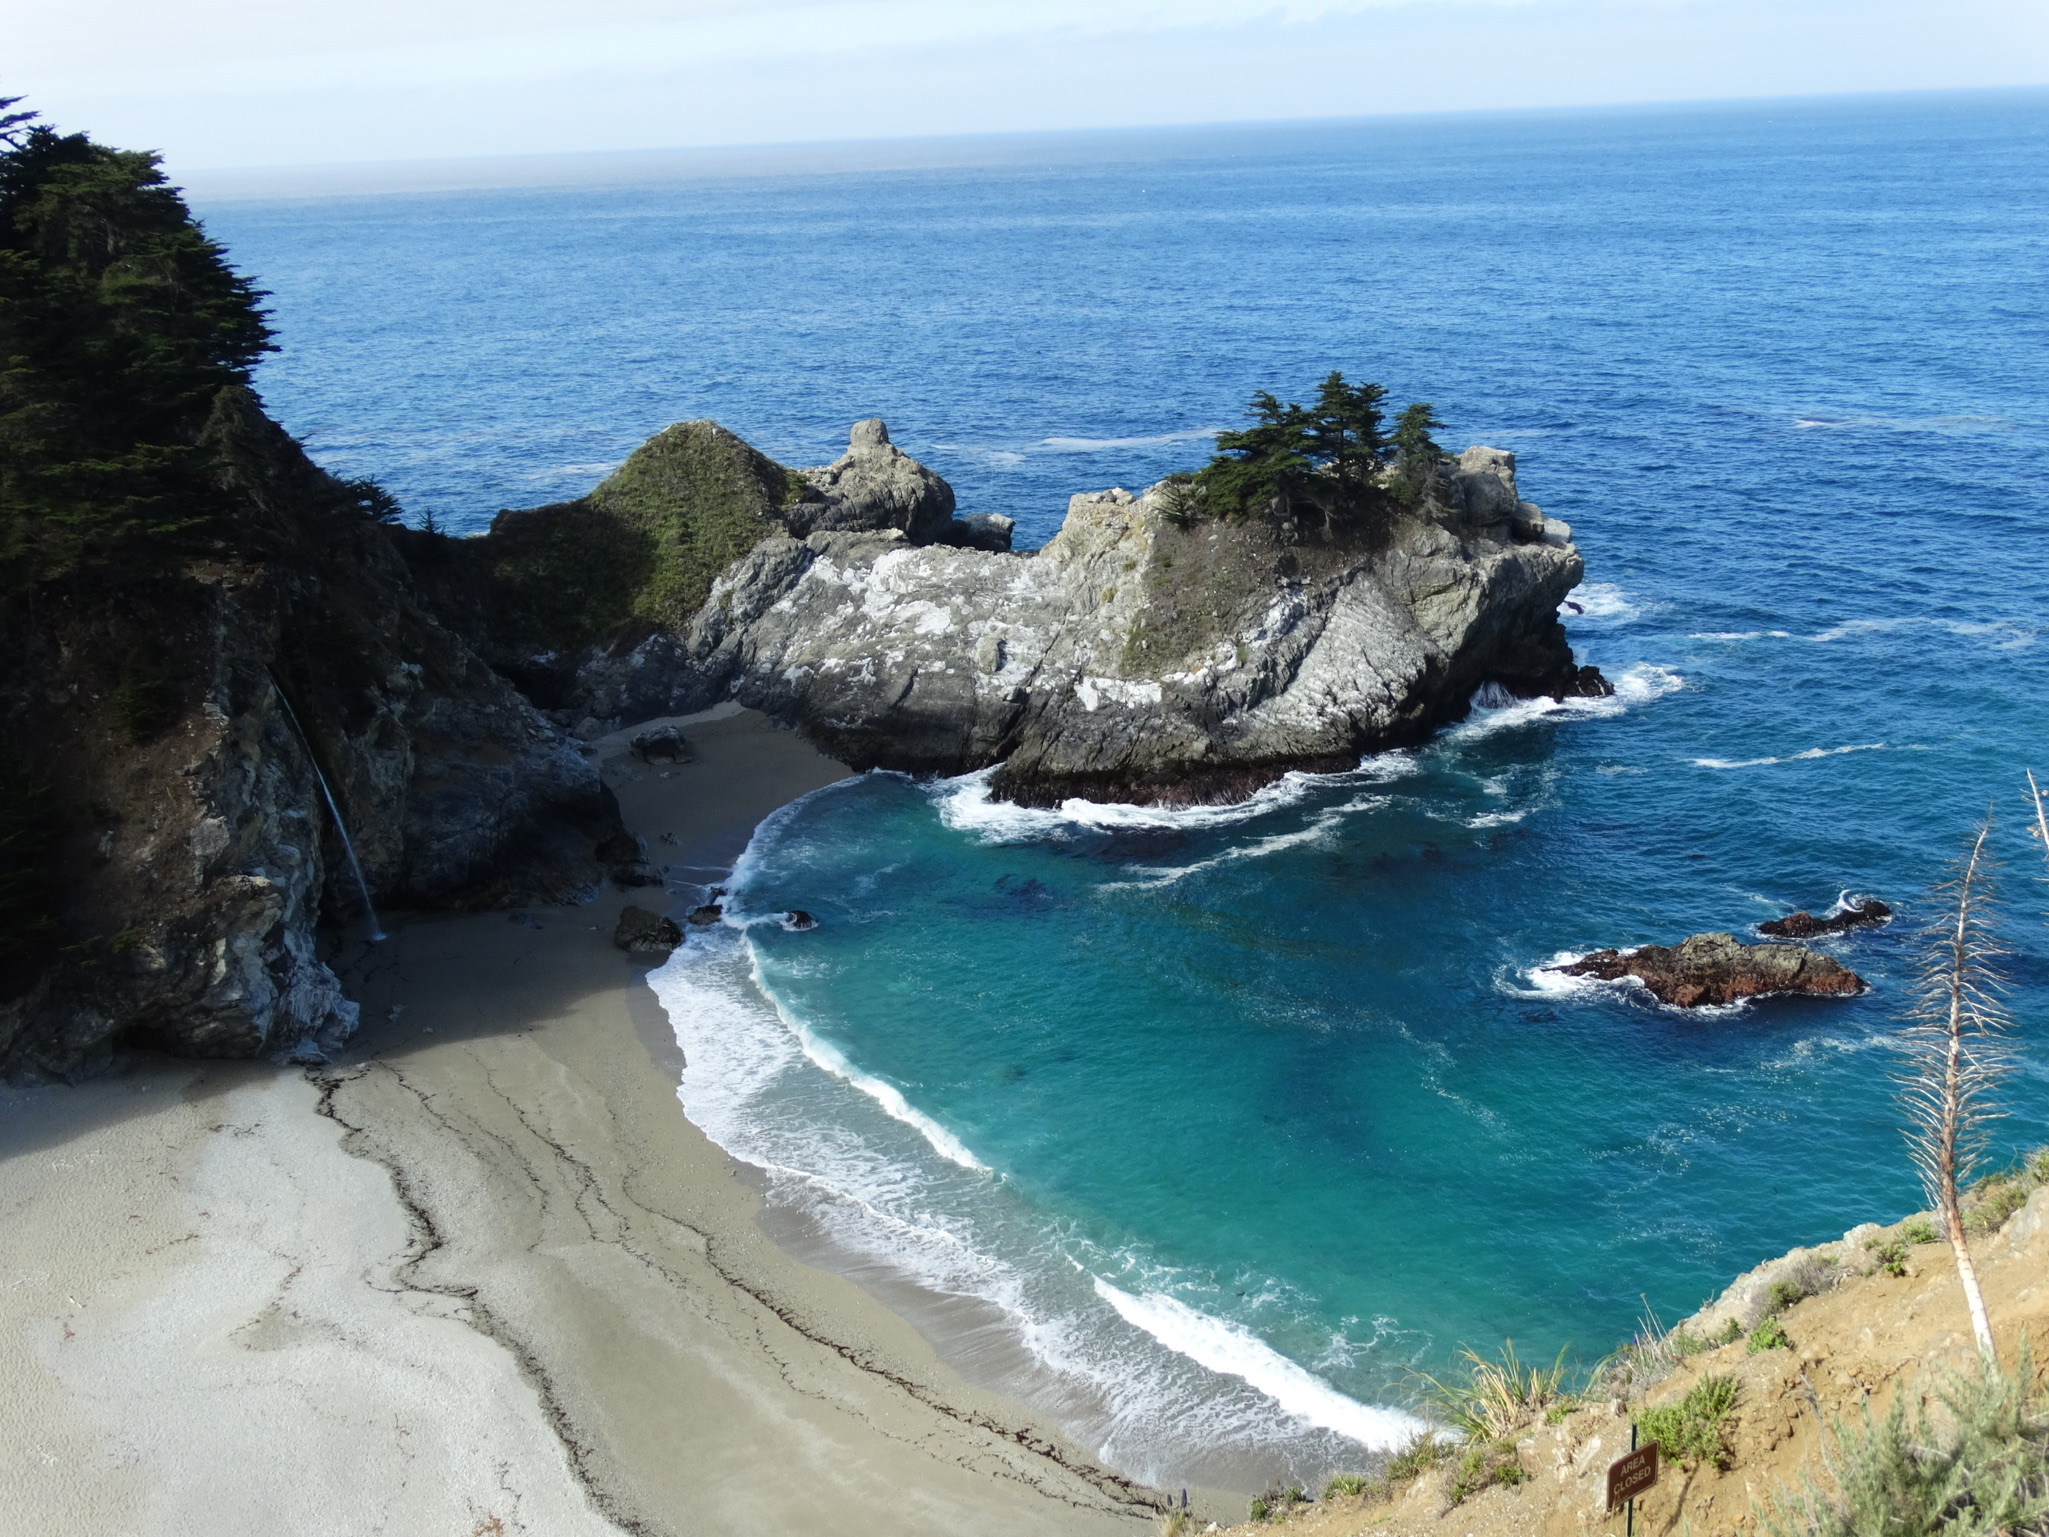 Pacific Ocean shoreline near Big Sur, California